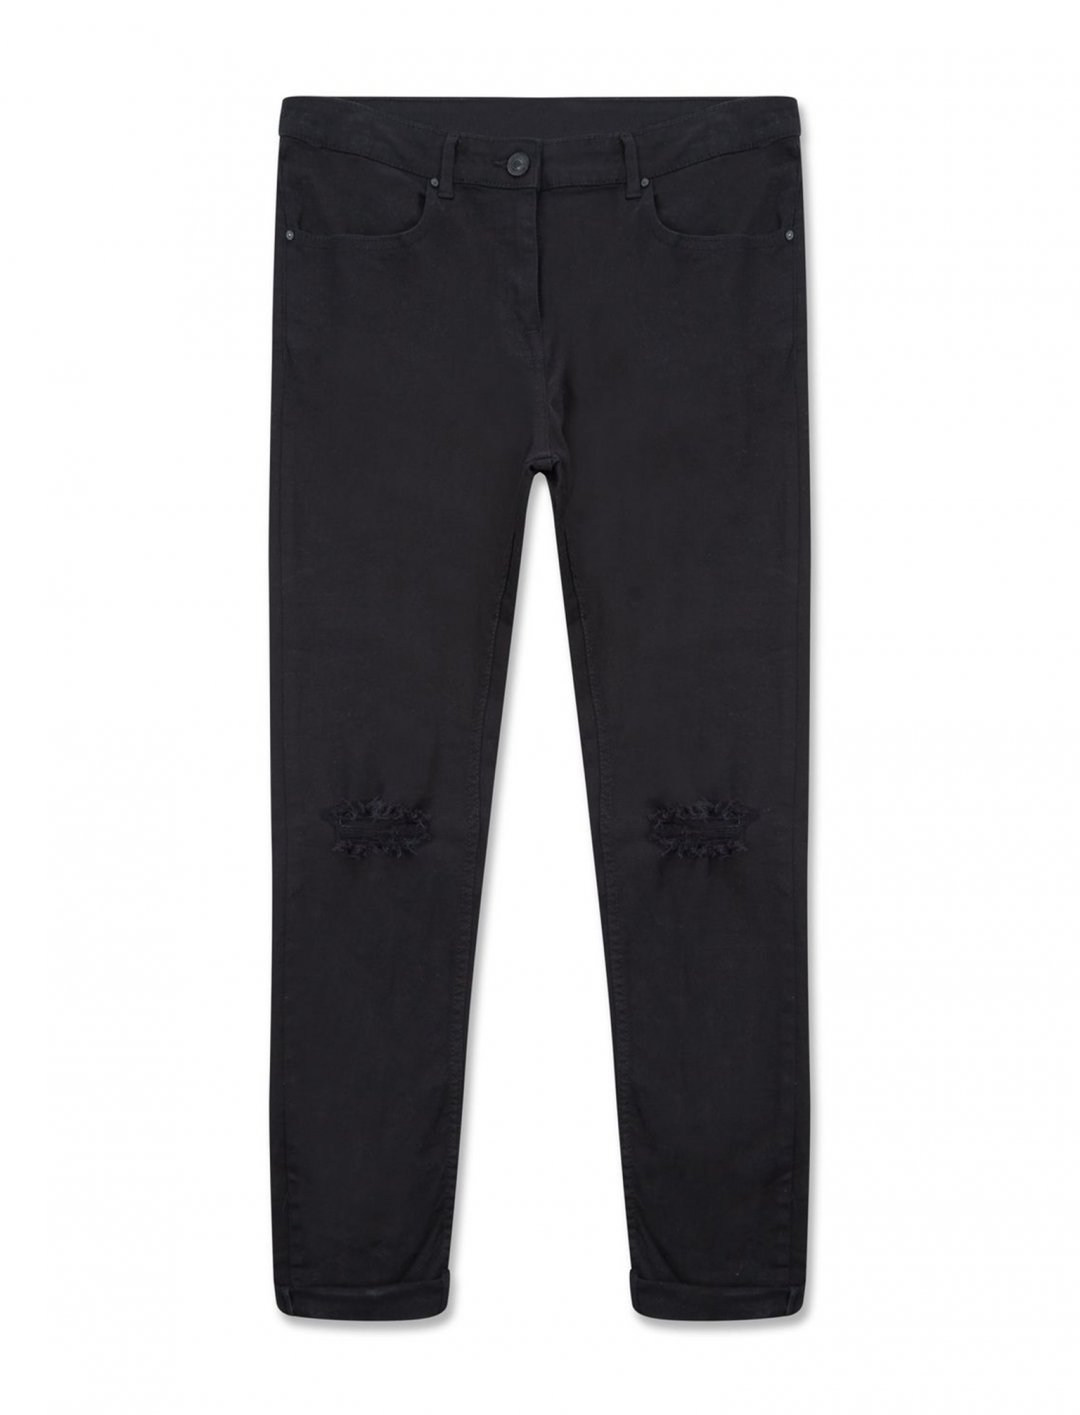 "New Look Ripped Knee Jeans {""id"":5,""product_section_id"":1,""name"":""Clothing"",""order"":5} New Look"